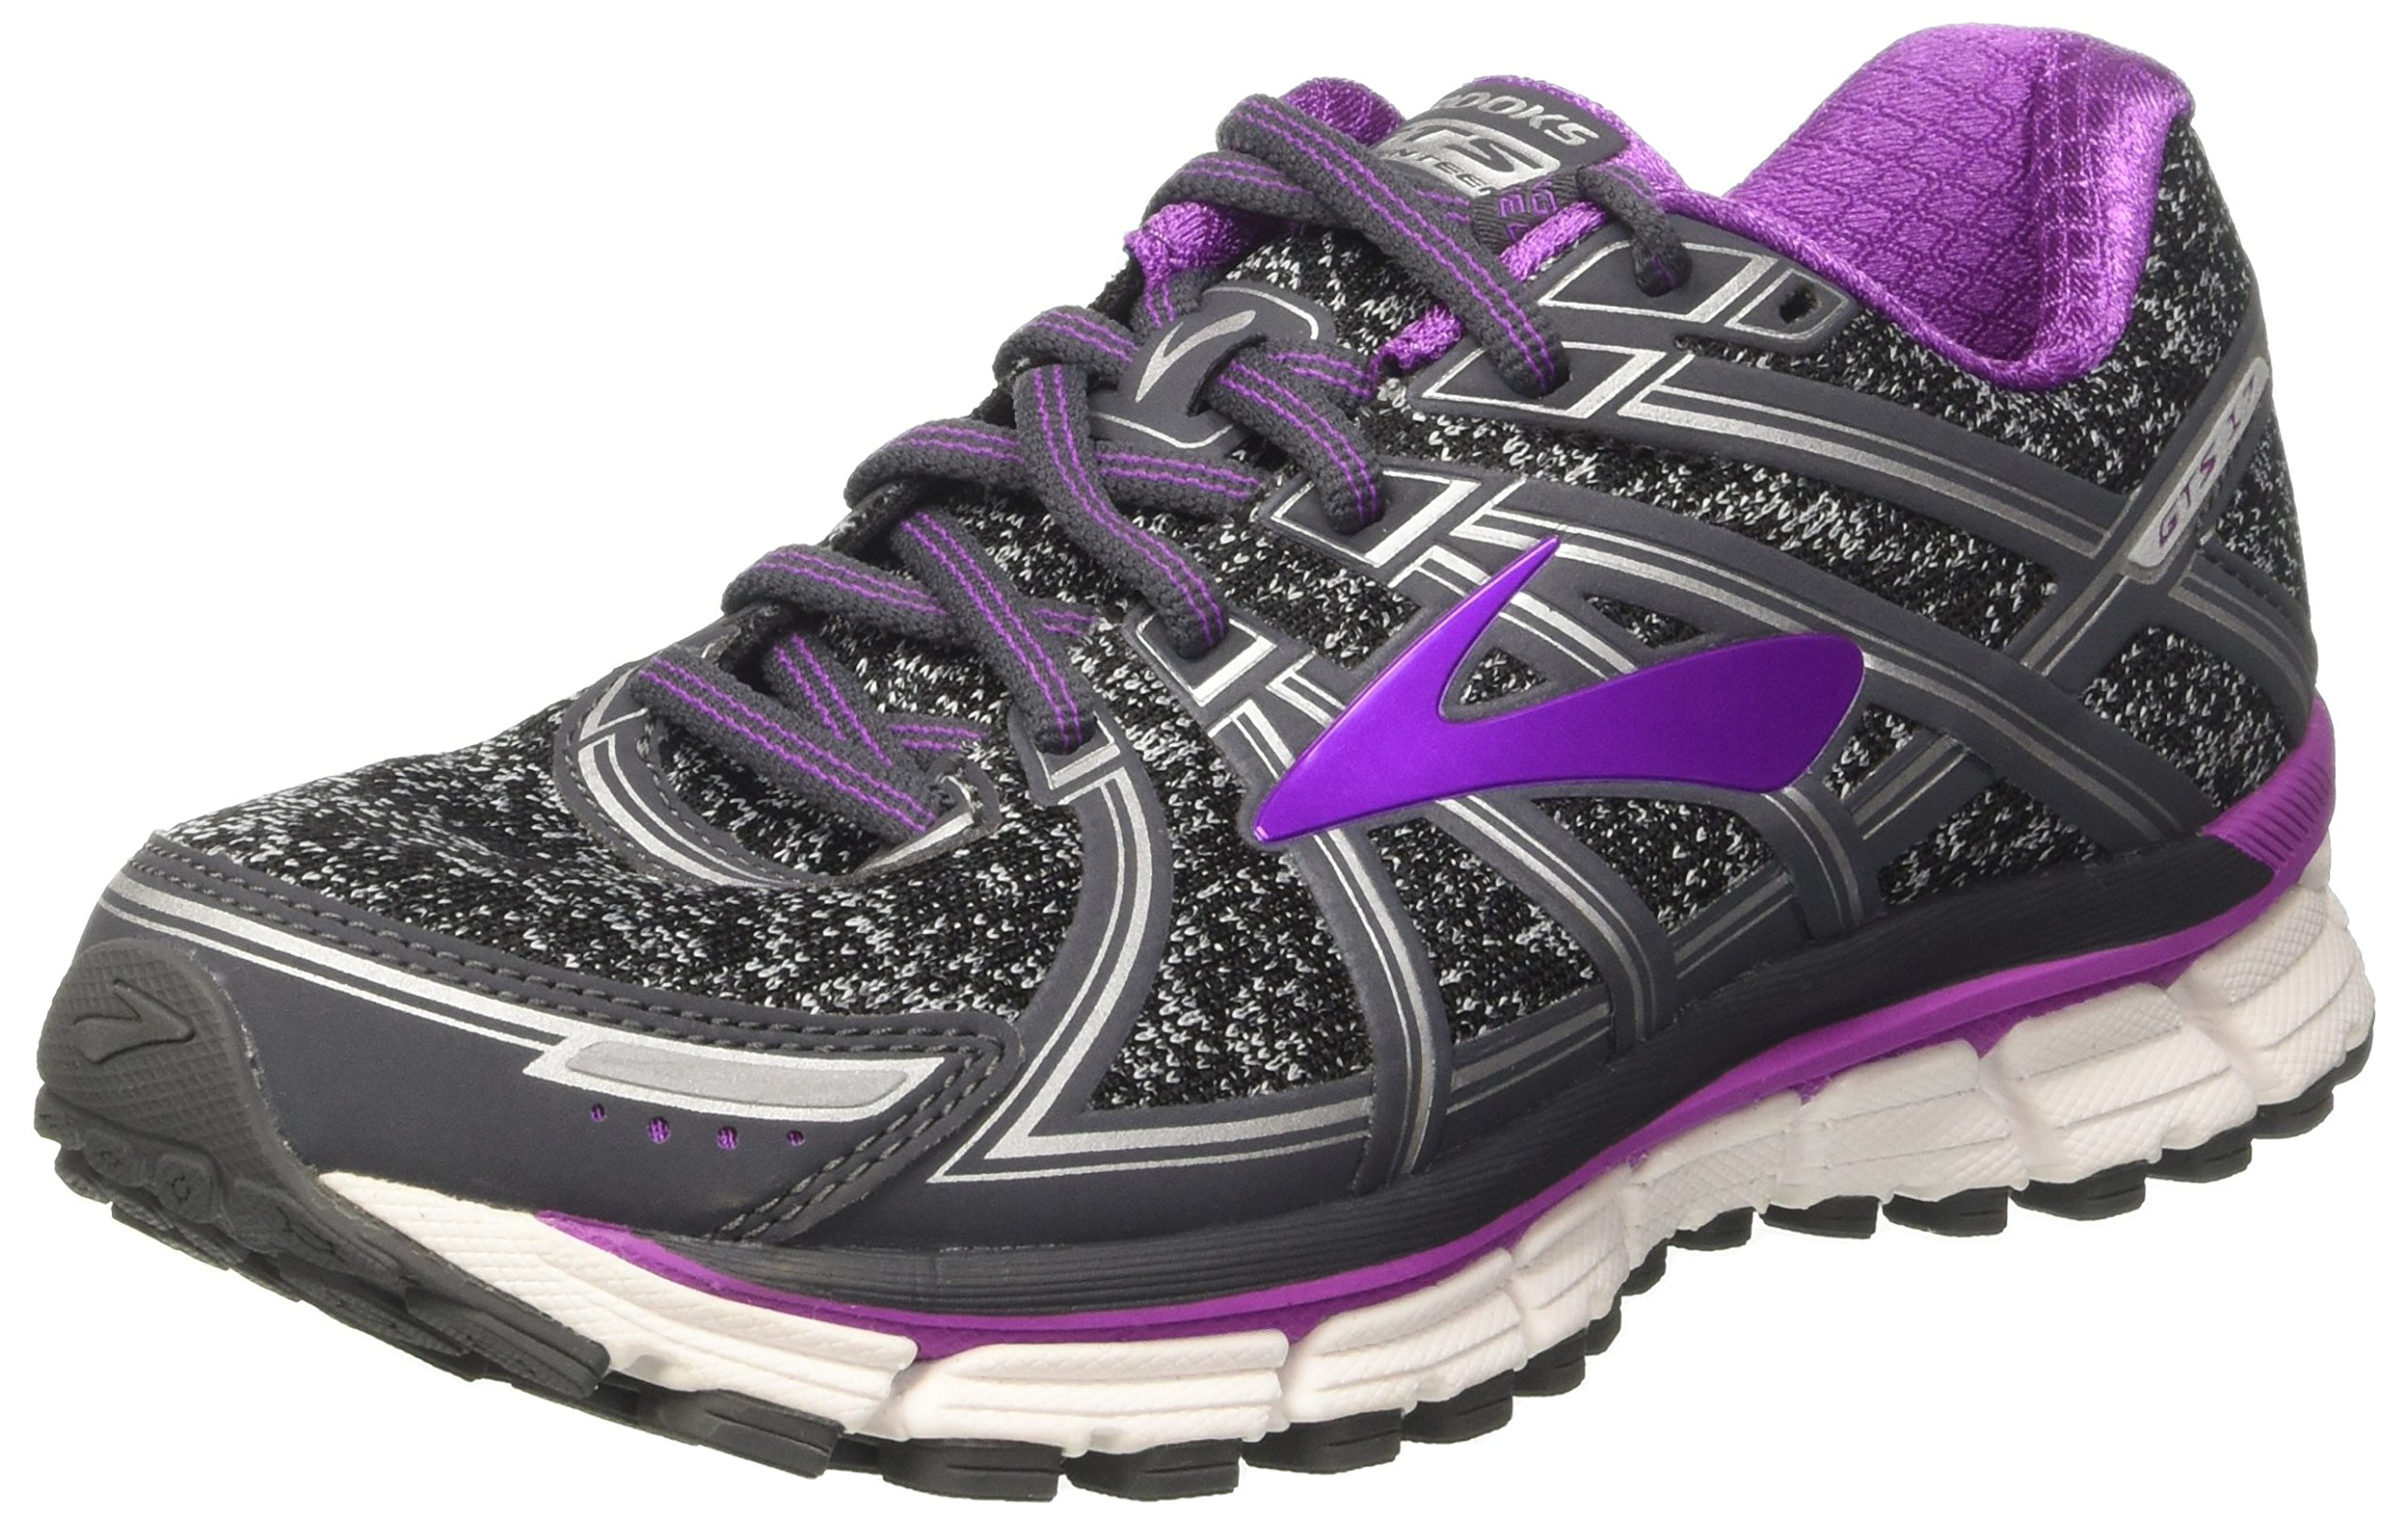 Adrenaline Cactus purple De Flower38 black Charcoal Eu FemmeGrismetallic Gymnastique Brooks Gts 17Chaussures OuPXkZi